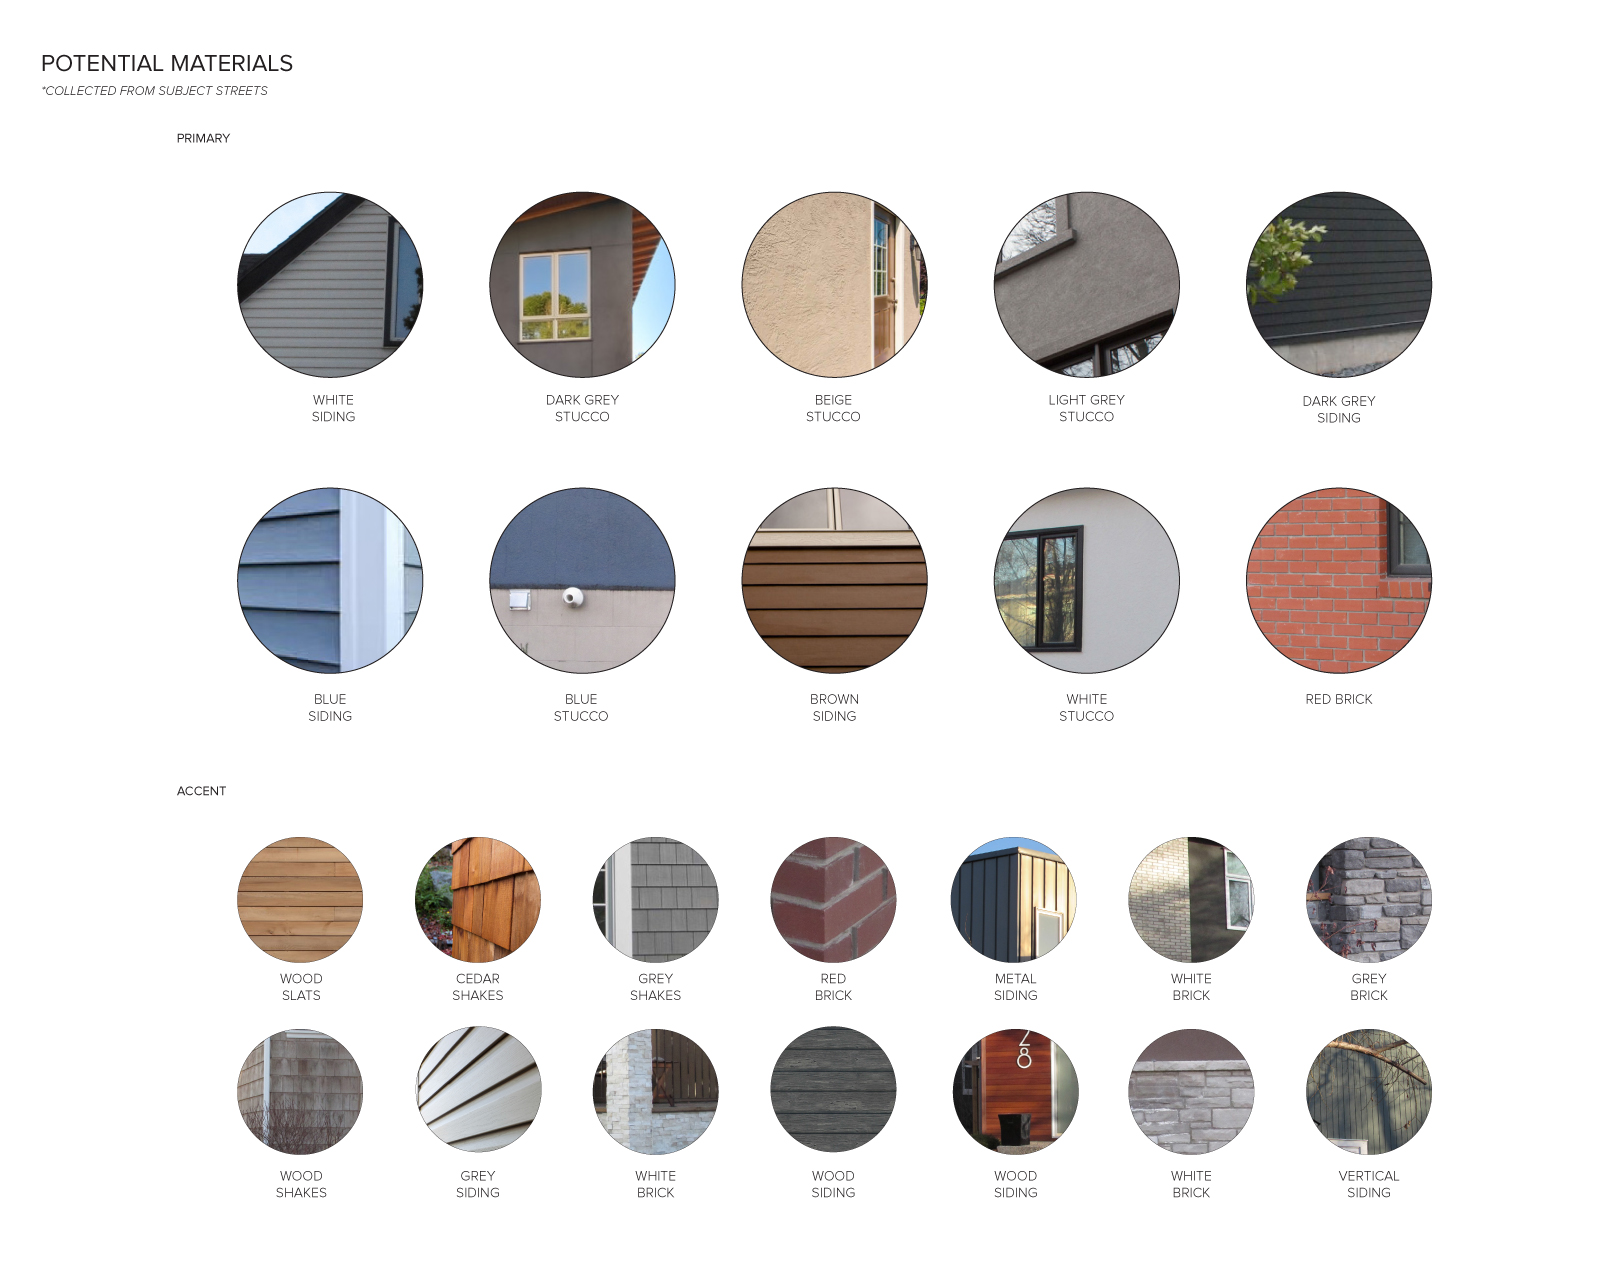 Images of different types of siding and accents (collected from the subject streets).